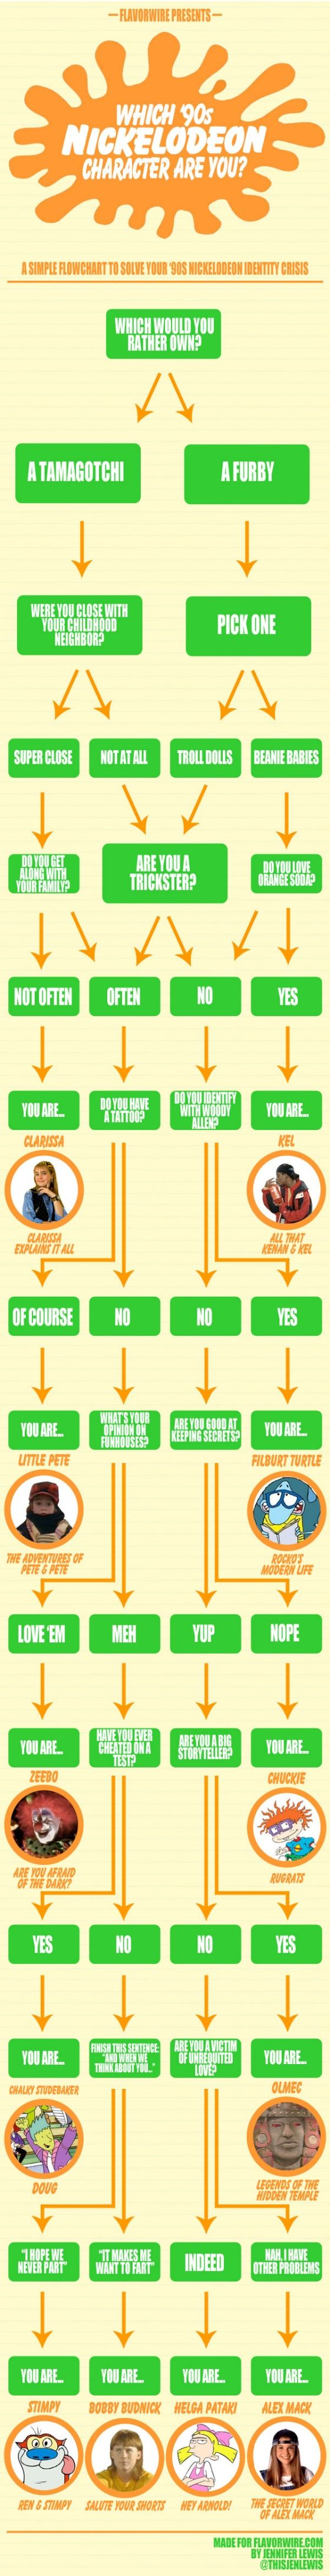 Which #90s Nickelodeon character are you? I'm Clarissa.